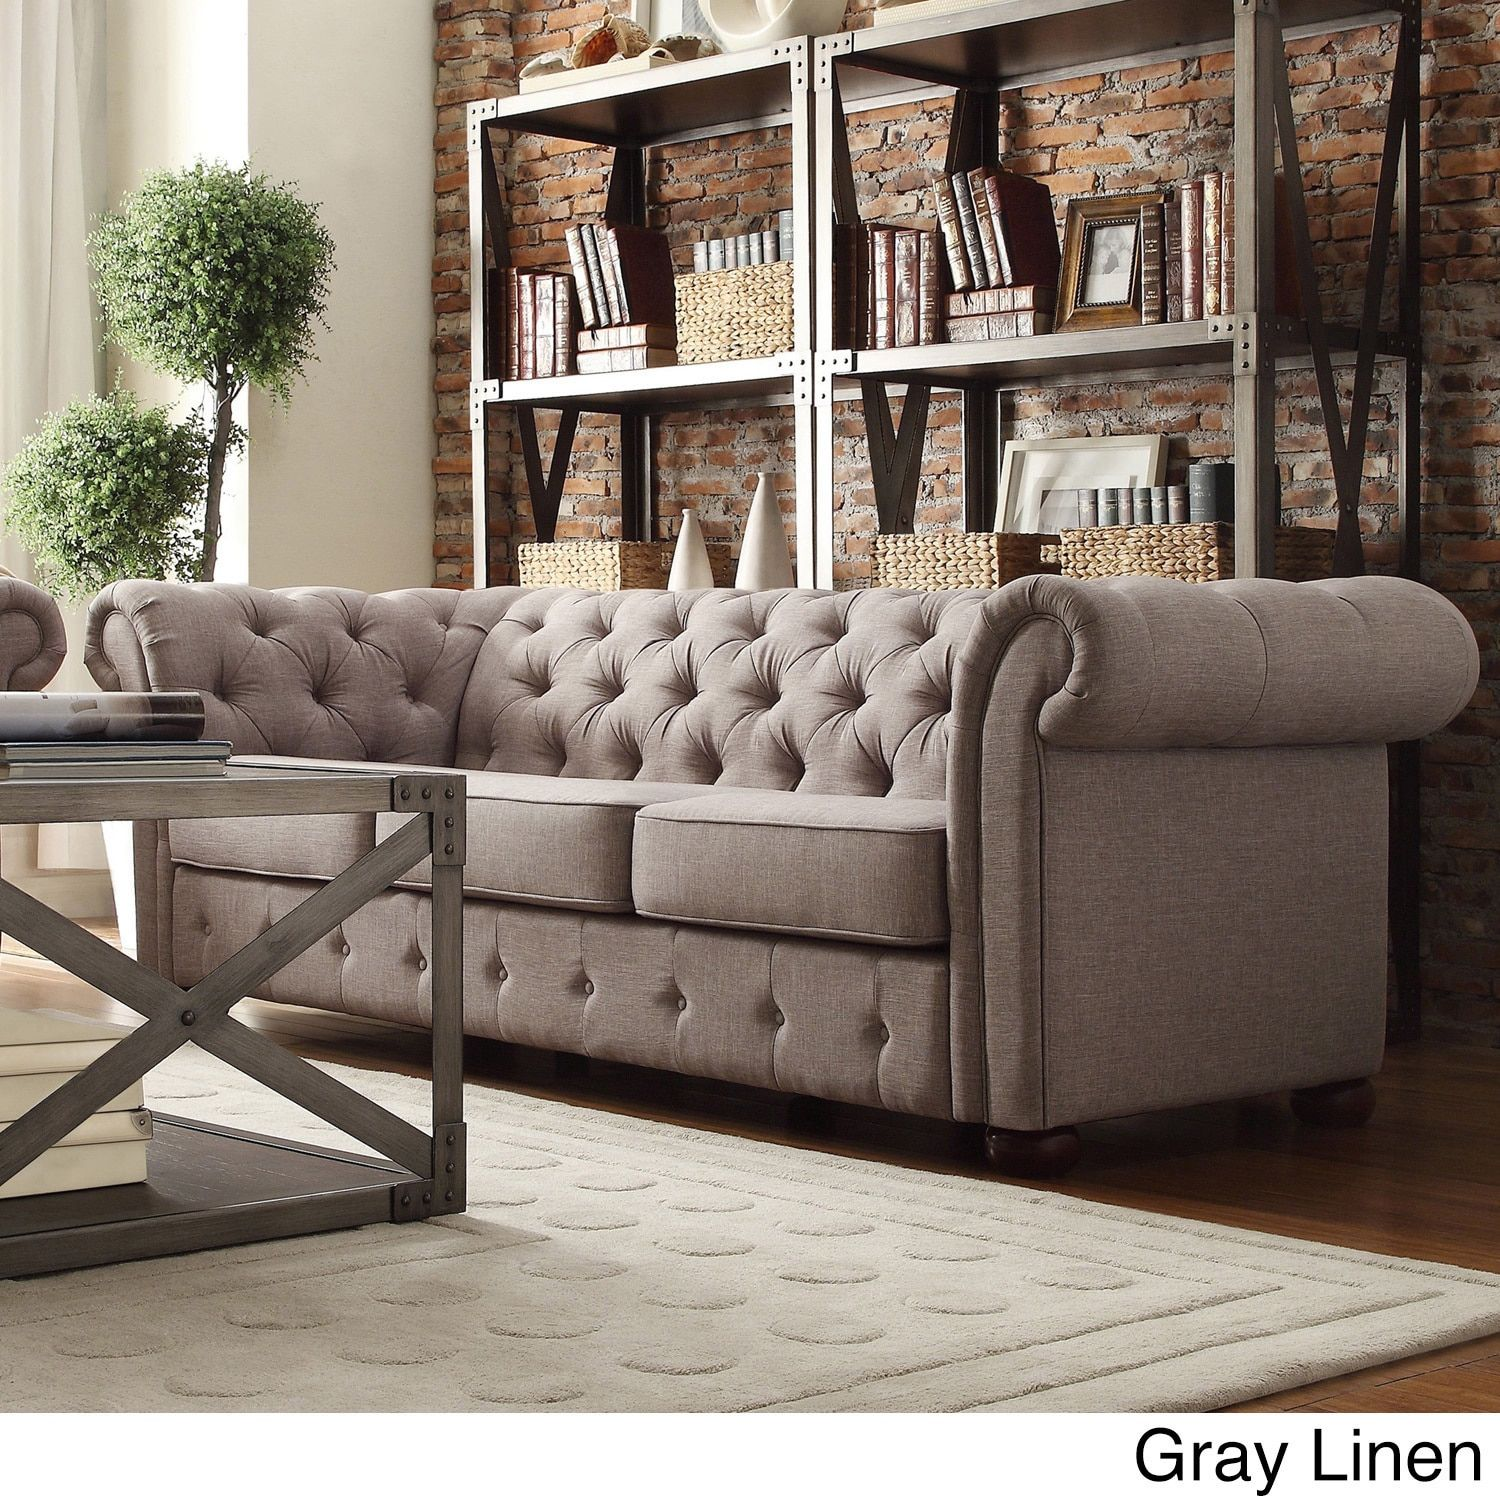 Knightsbridge Tufted Scroll Arm Chesterfield Sofa By Inspire Q Grey Linen